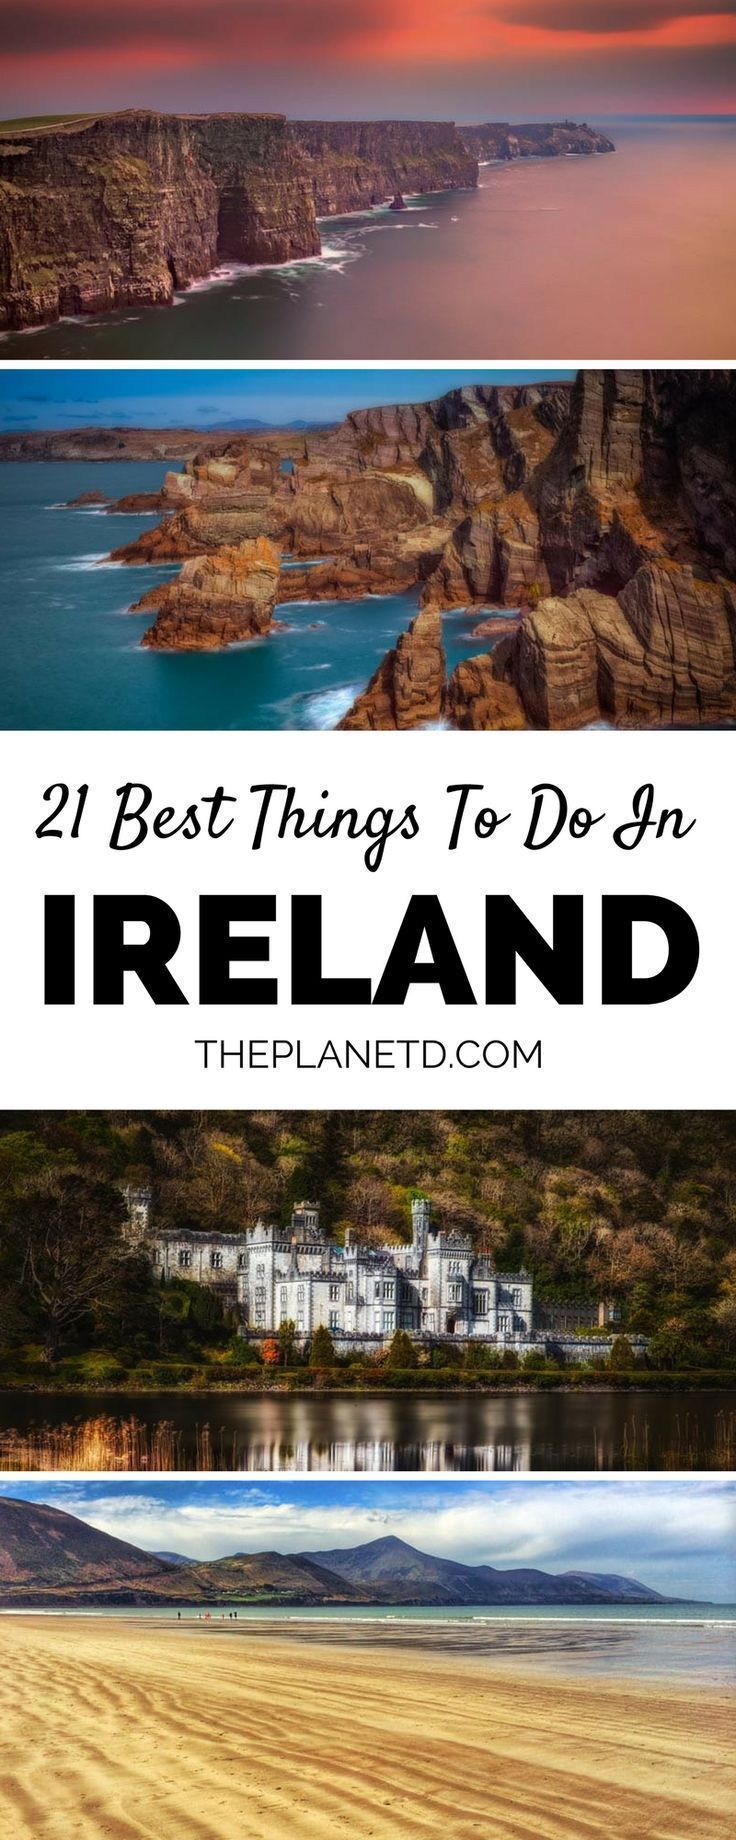 A complete guide with 21 of the best things to do in Ireland. Take a day trip to Galway and venture off to the cliffs of Moher or visit a castle along the coast. Escape the Dublin and Cork city centers with day trips around the country. Experience the rolling hills and seemingly endless green countryside of Ireland. Travel in Ireland. | Blog by the Planet D #Ireland #irelandtravel